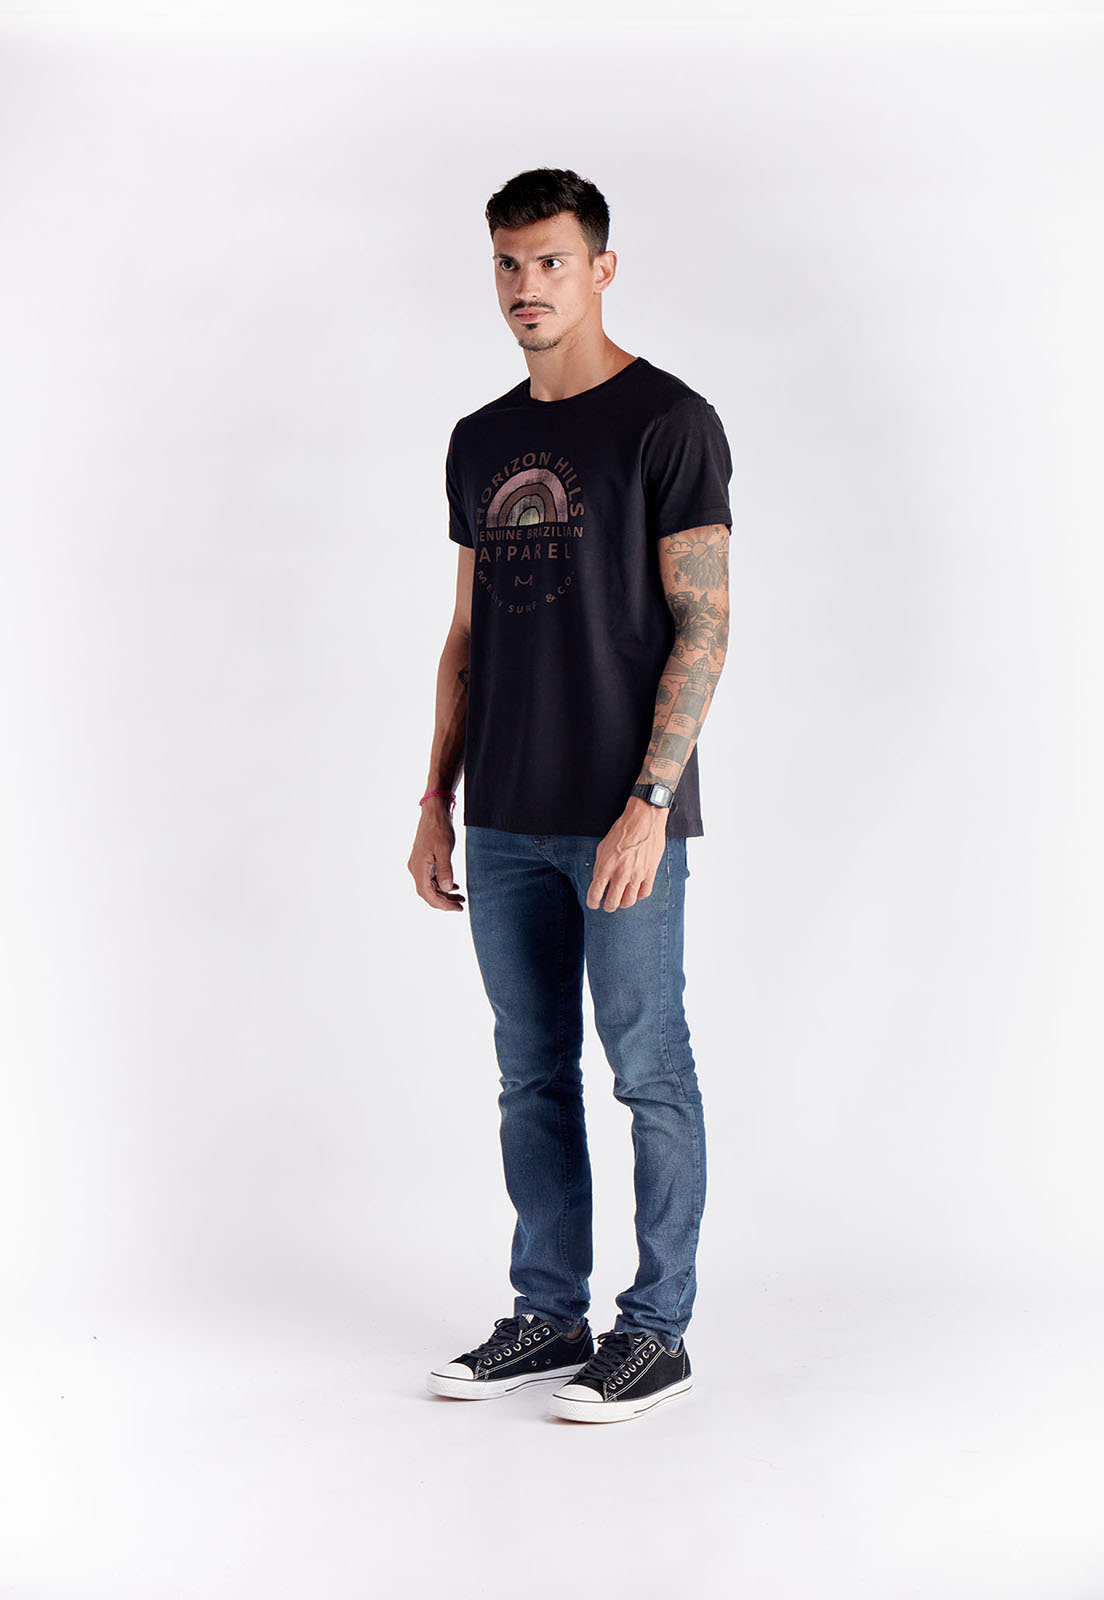 T-shirt Rainbow Hills Preto Melty  - melty surf & Co.